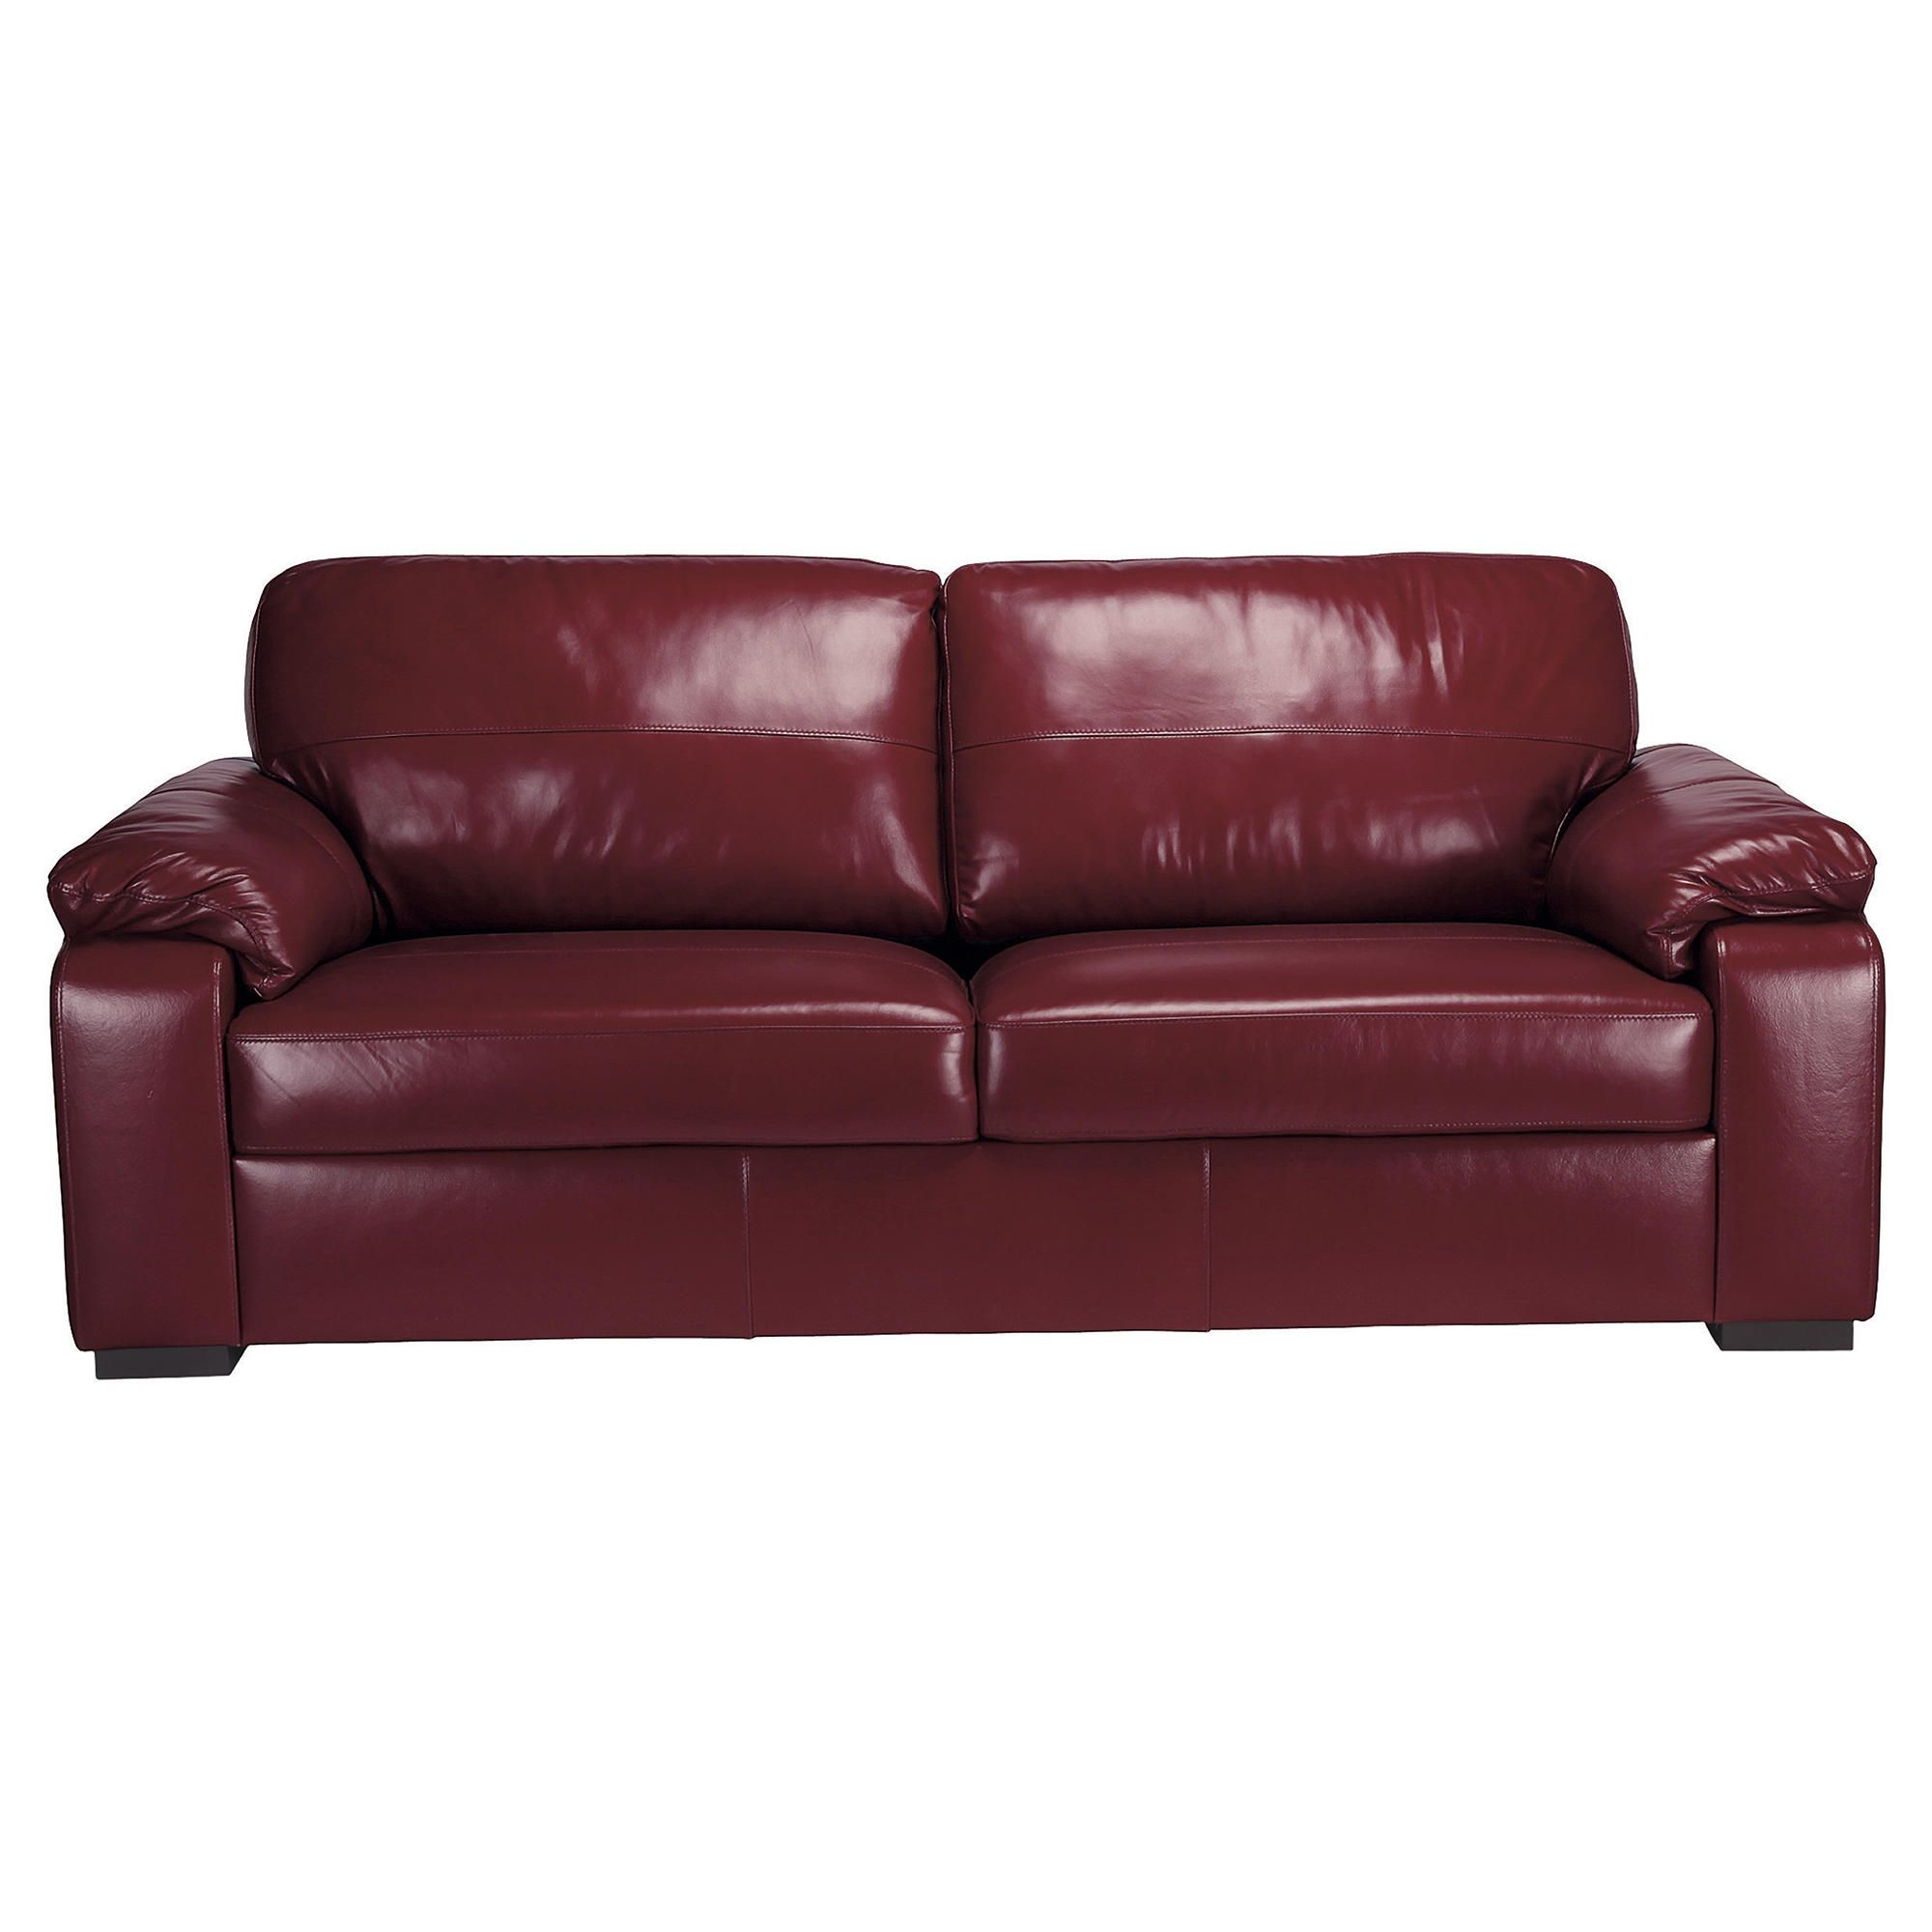 Home And Garden Furniture Ashmore Leather Corner Chaise Sofa Bed Brown Left Hand Facing